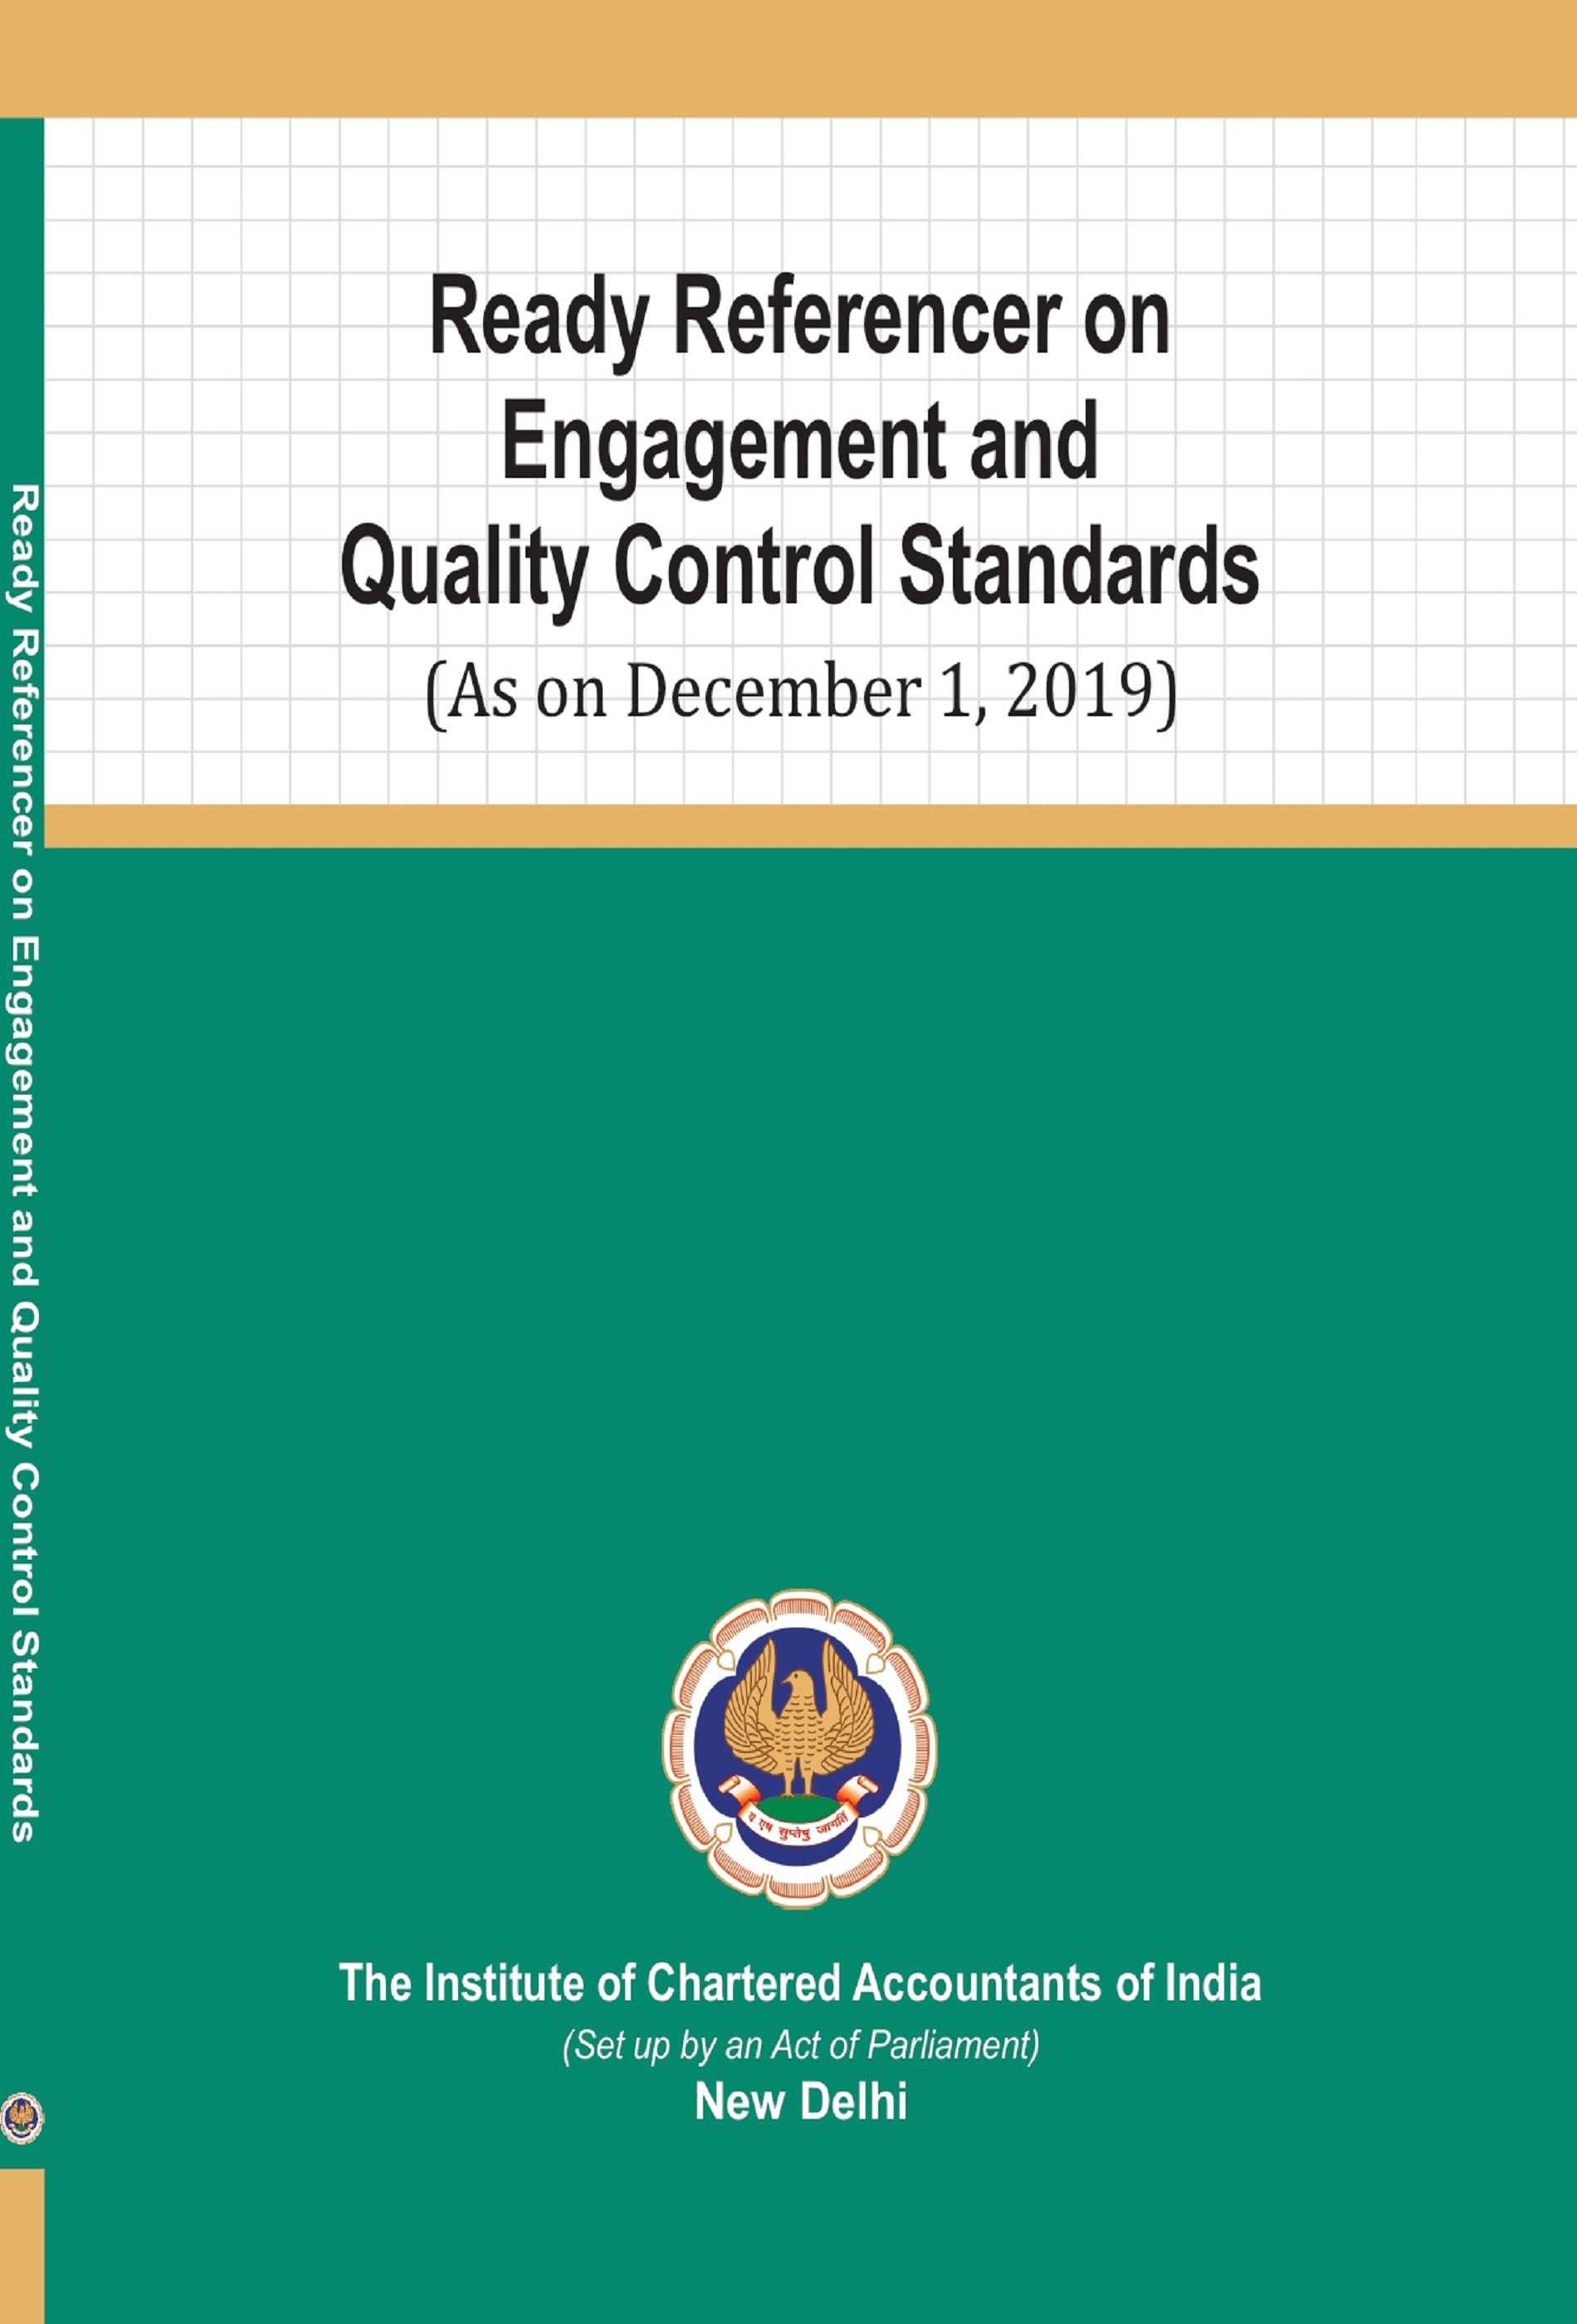 Ready Referencer on Engagement and Quality Control Standards (As on December 1, 2019)